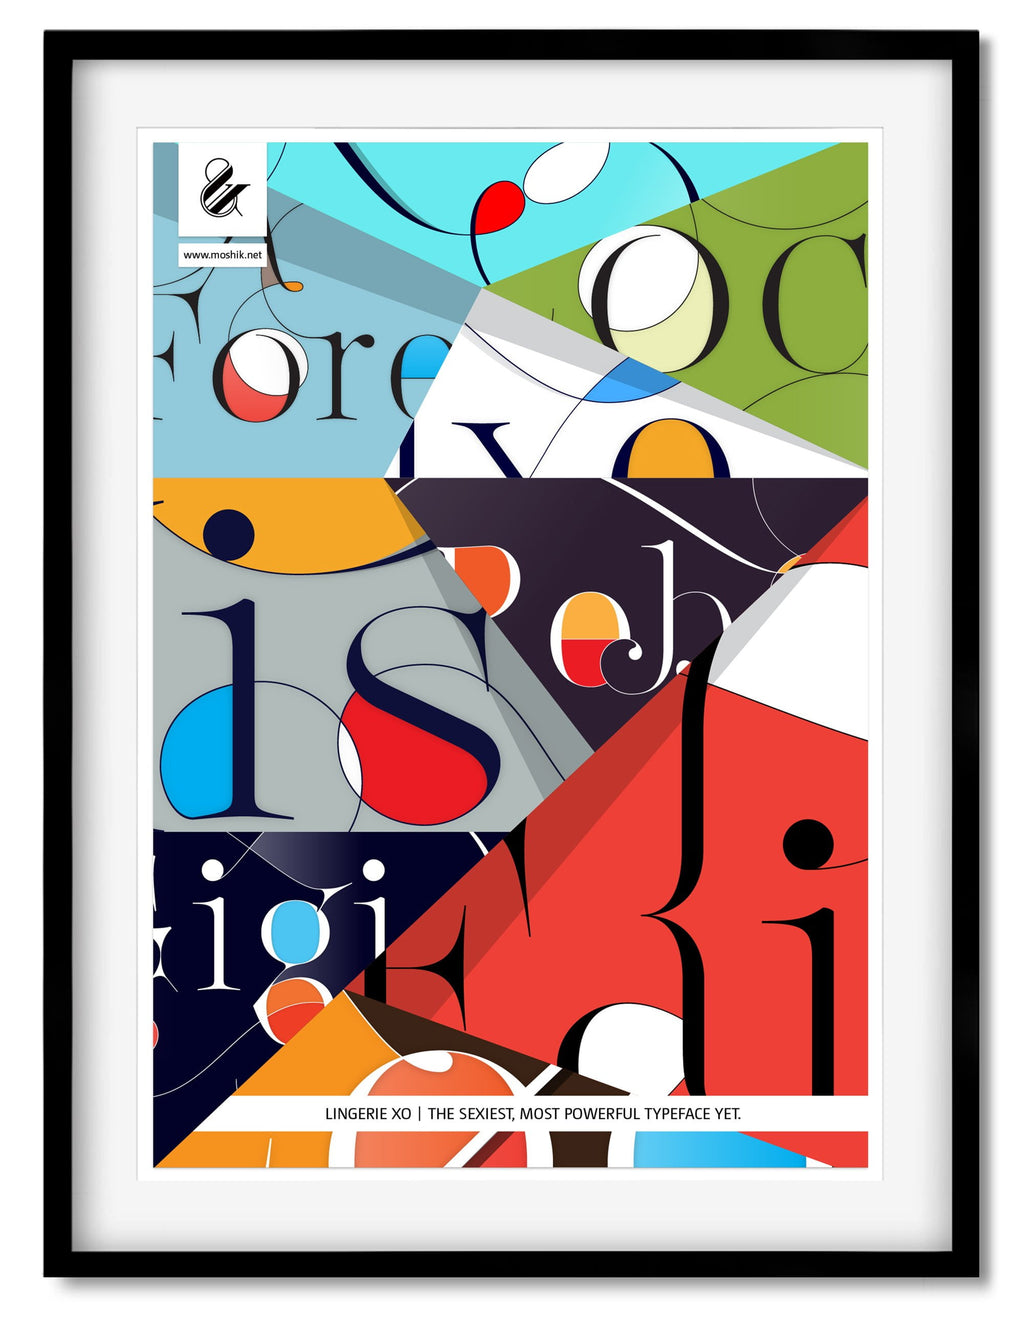 Buy this Amazing poster to decorate your New York studio by Moshik Nadav Typography